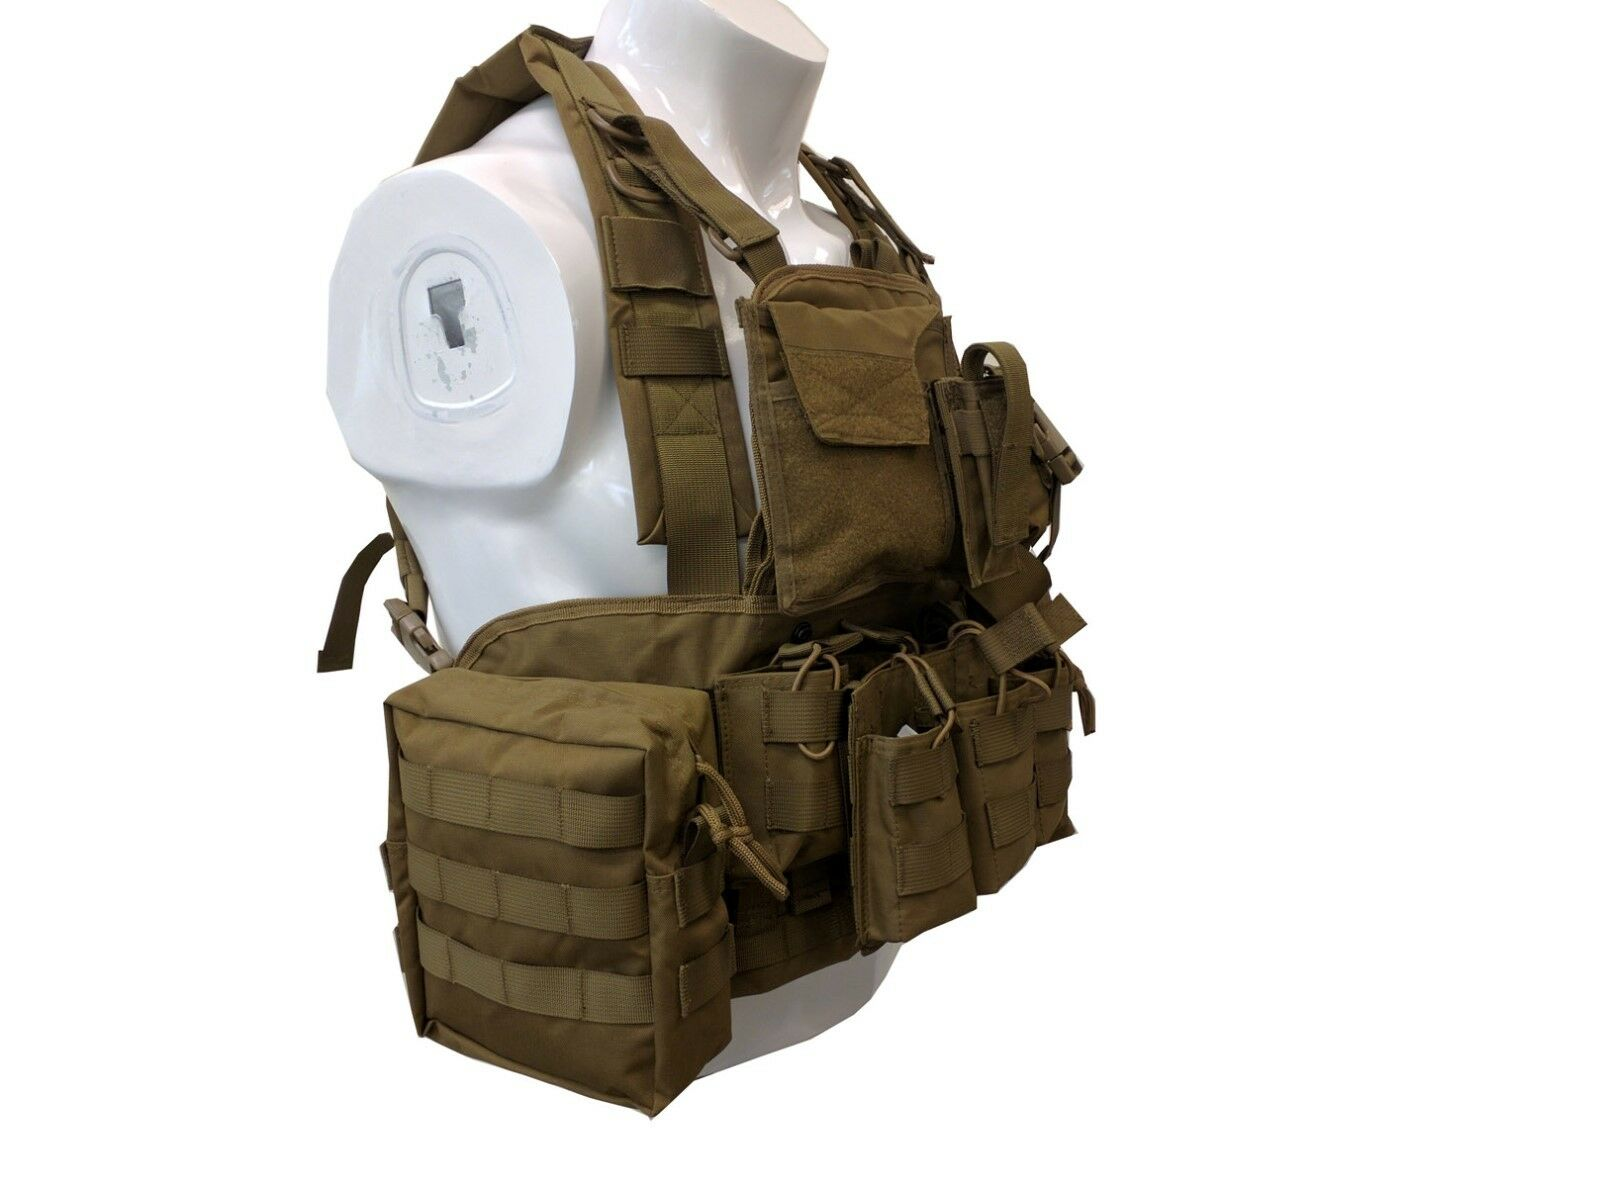 Military Army Fans Carrier Outdoor Outdoor Outdoor Tactical Sports MOLLE Gear Adjustable Vest 21 00e3db